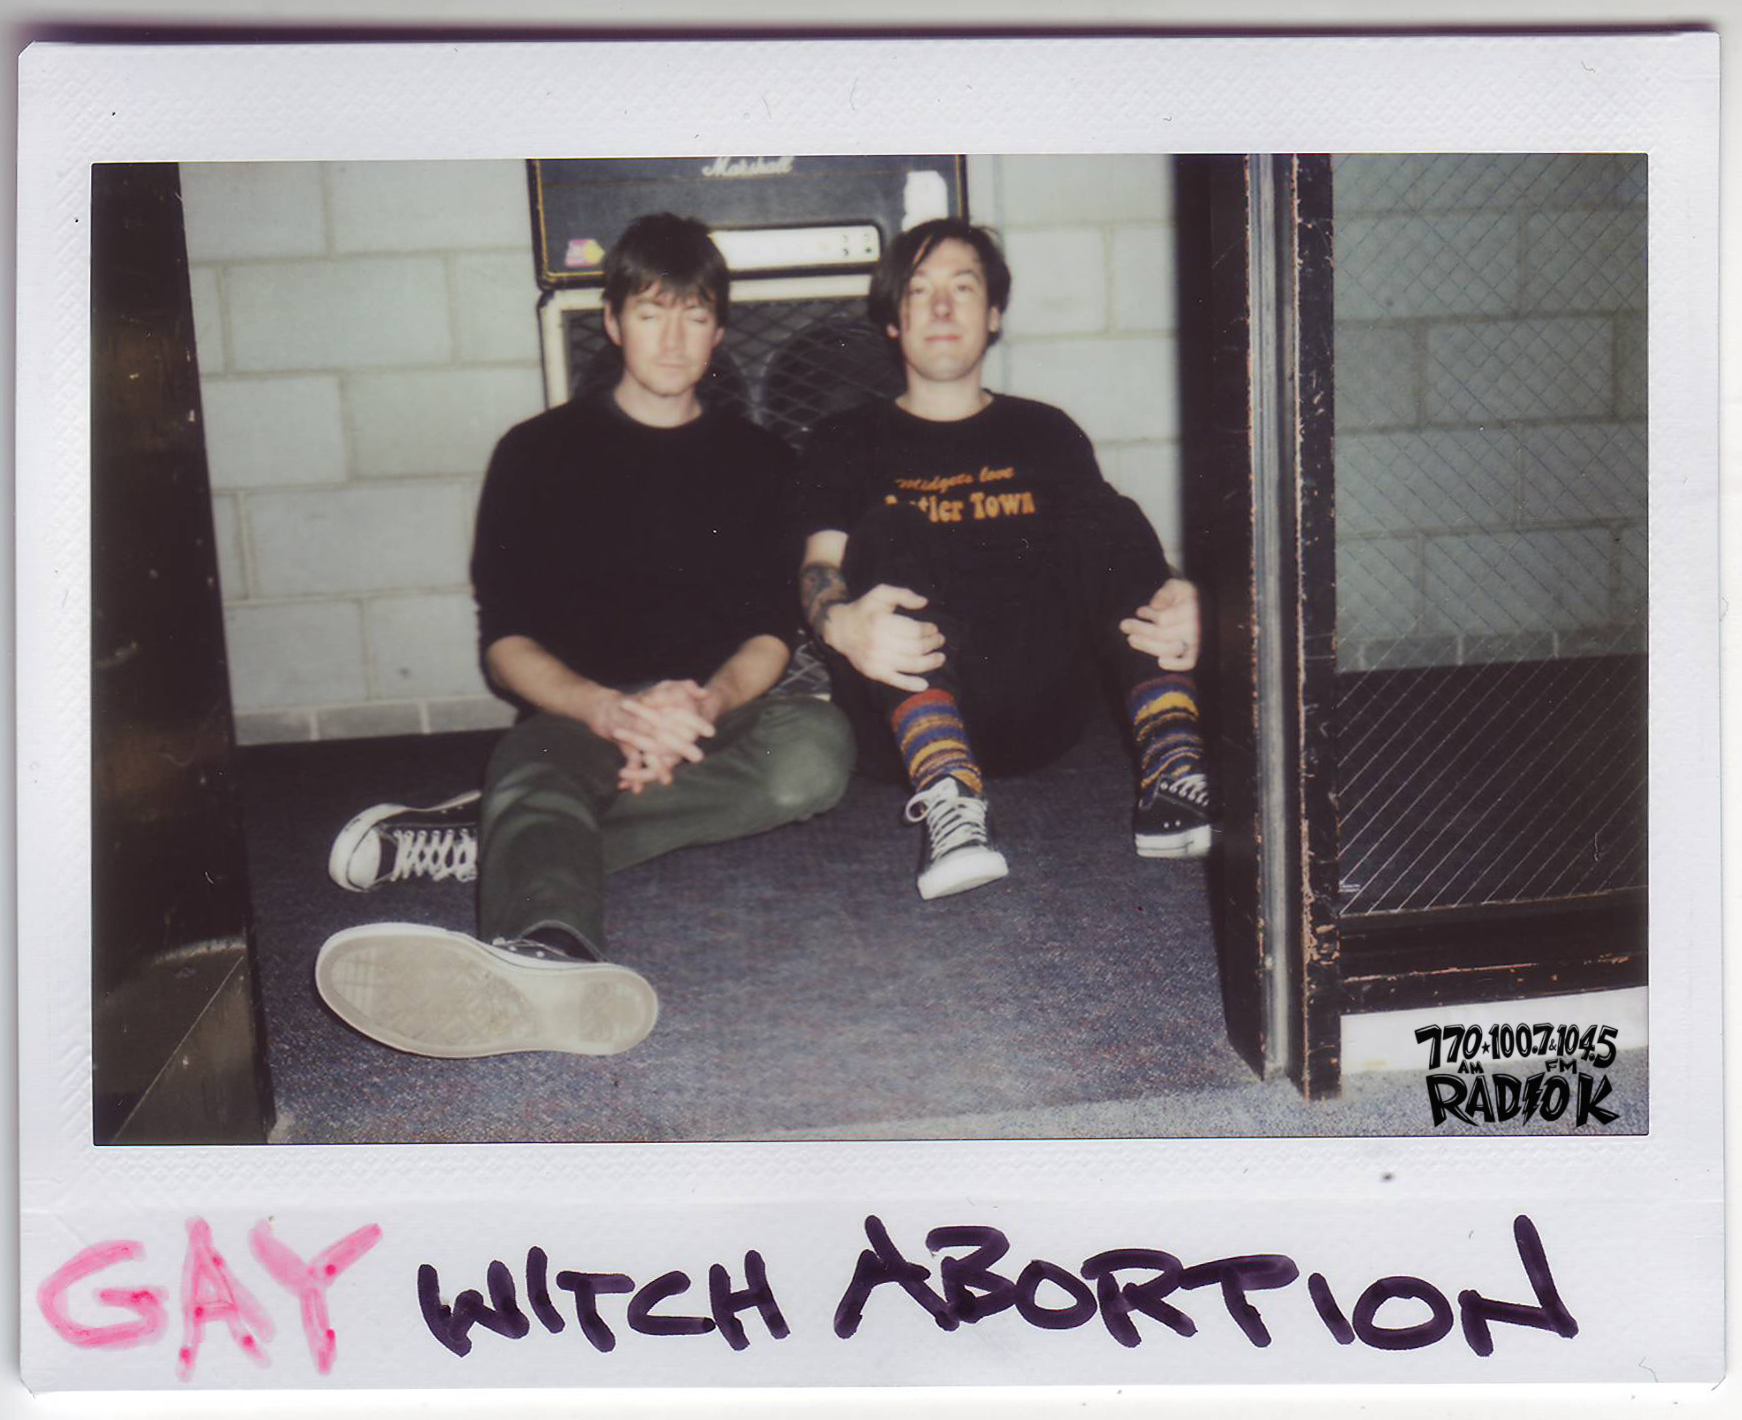 Gay Witch Abortion Radio K In-studio Polaroid - Off The Record